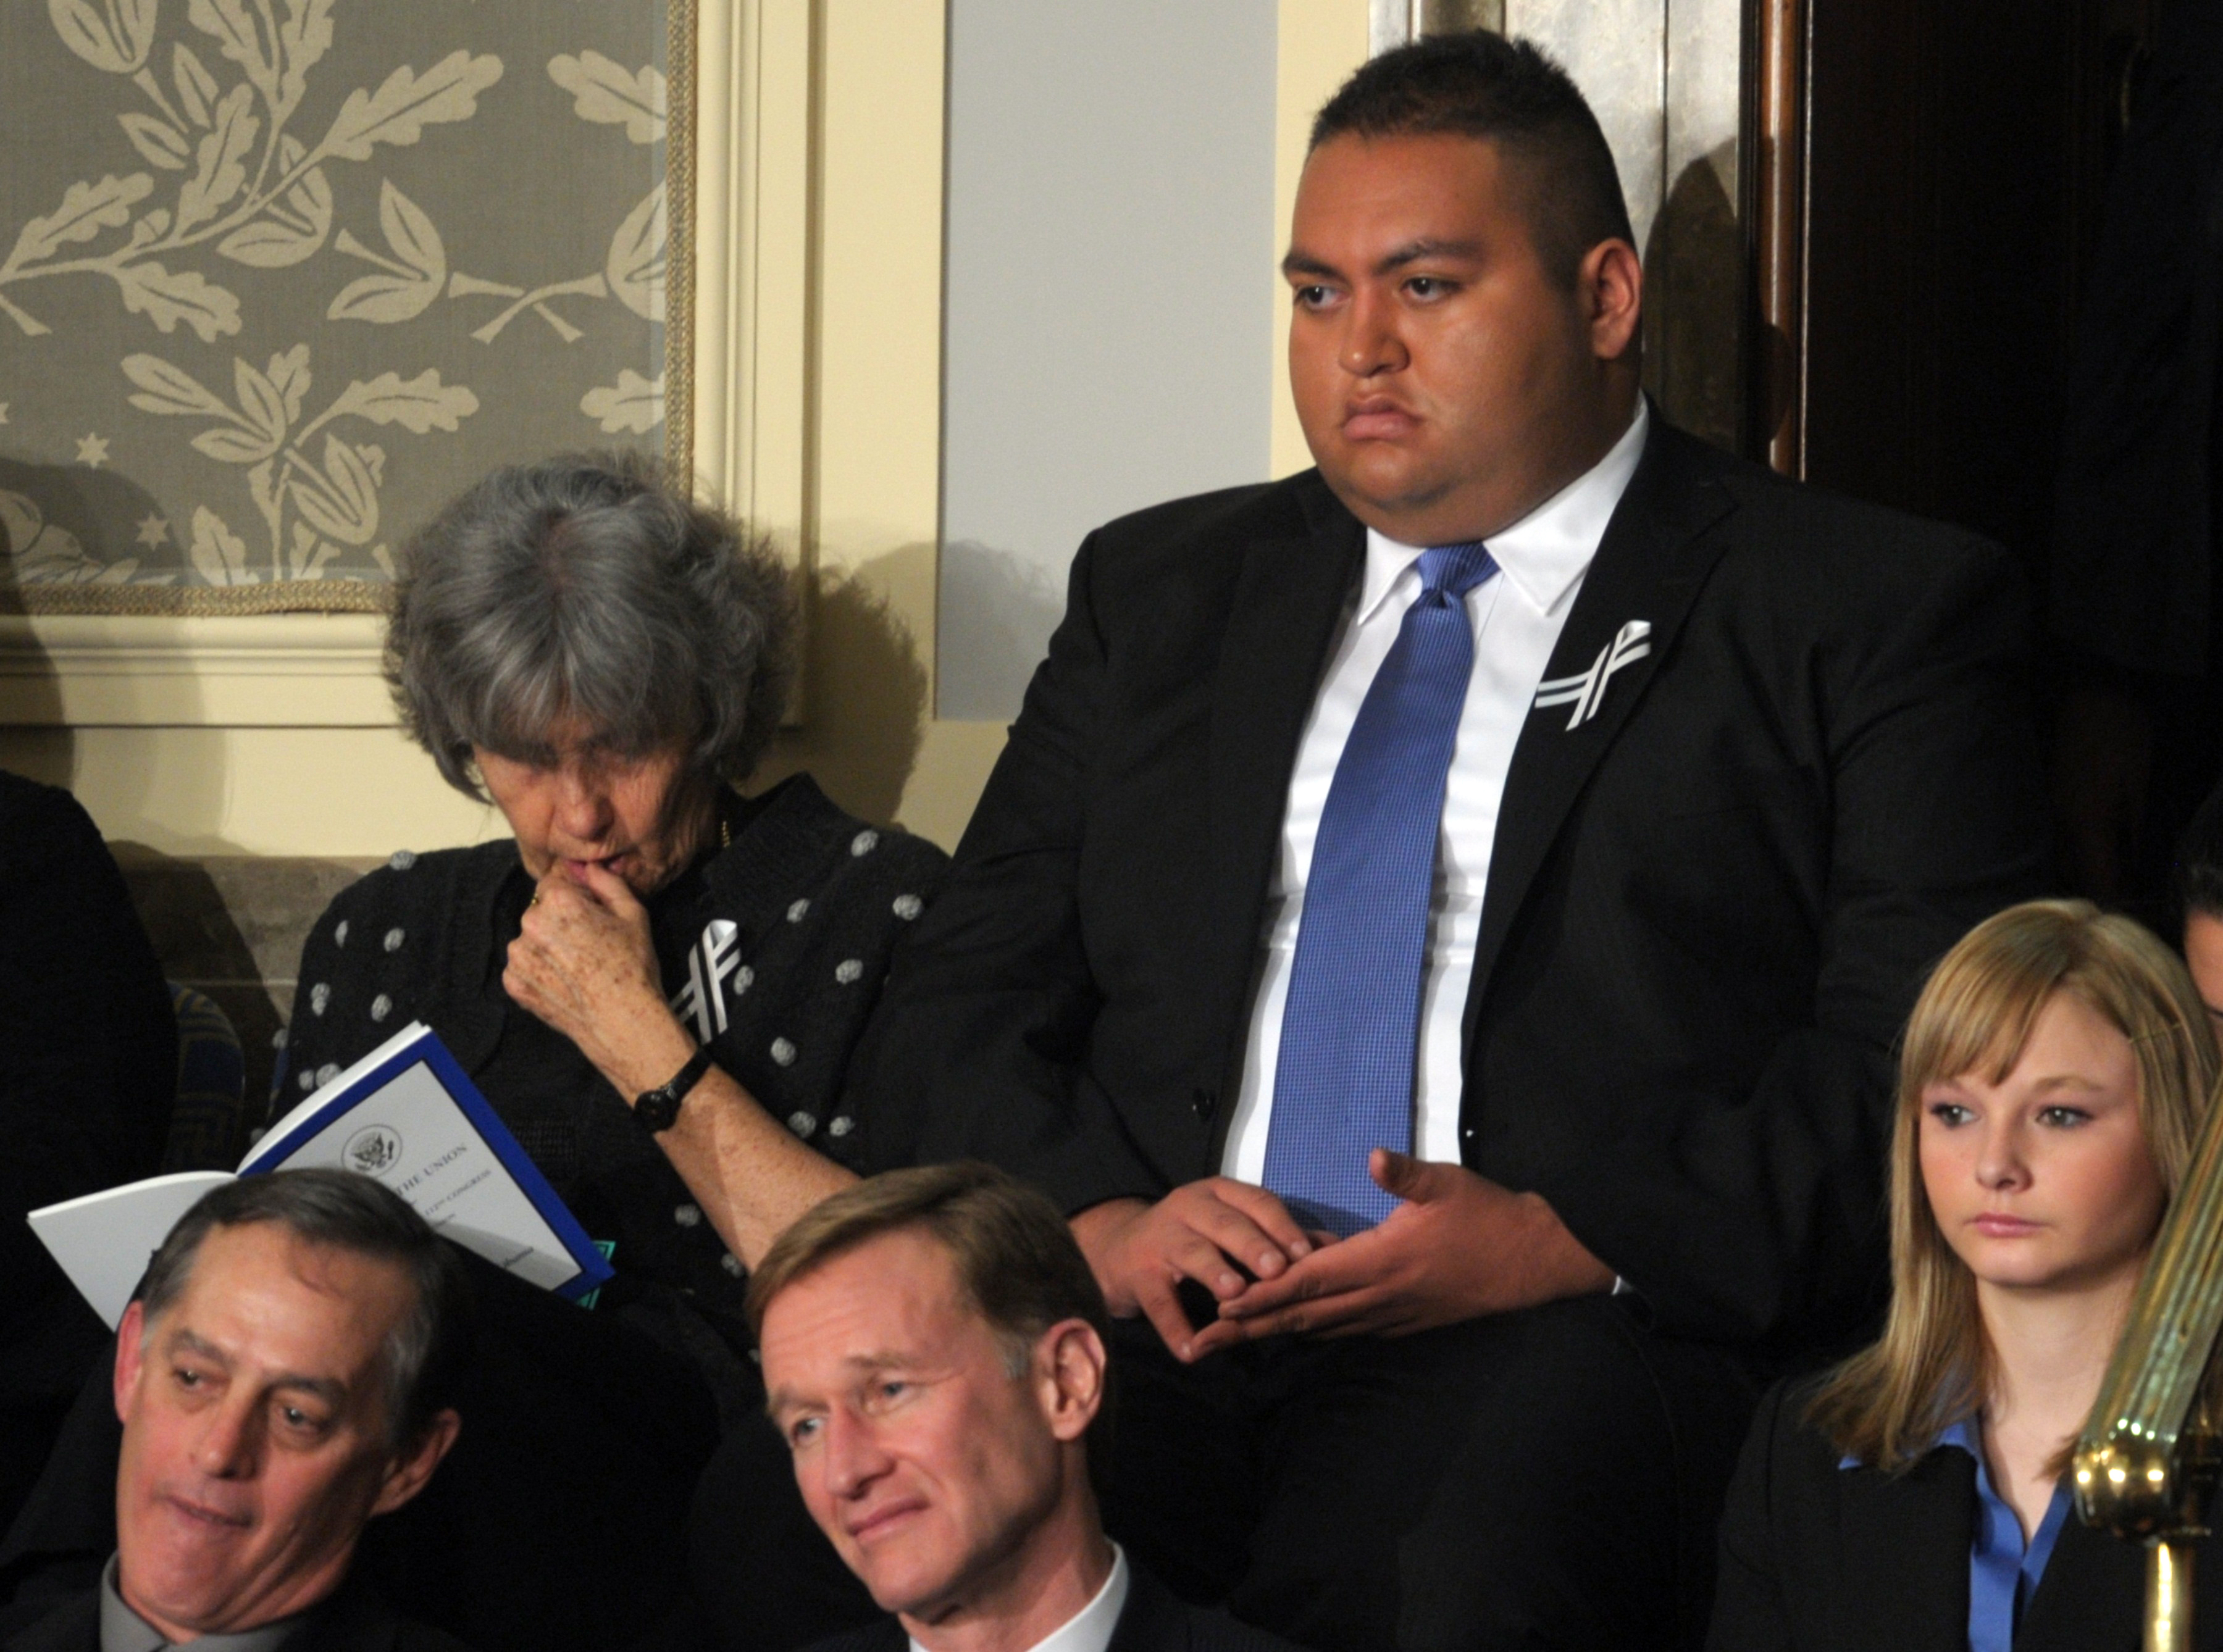 Arizona Rep. Gabrielle Giffords' intern, Daniel Hernandez, listens to President Obama's State of the Union Address on Jan. 25, 2011. Hernandez is credited with saving Giffords' life after she was shot in the head during a constituent meet-and-greet at a Tuscon grocery store.